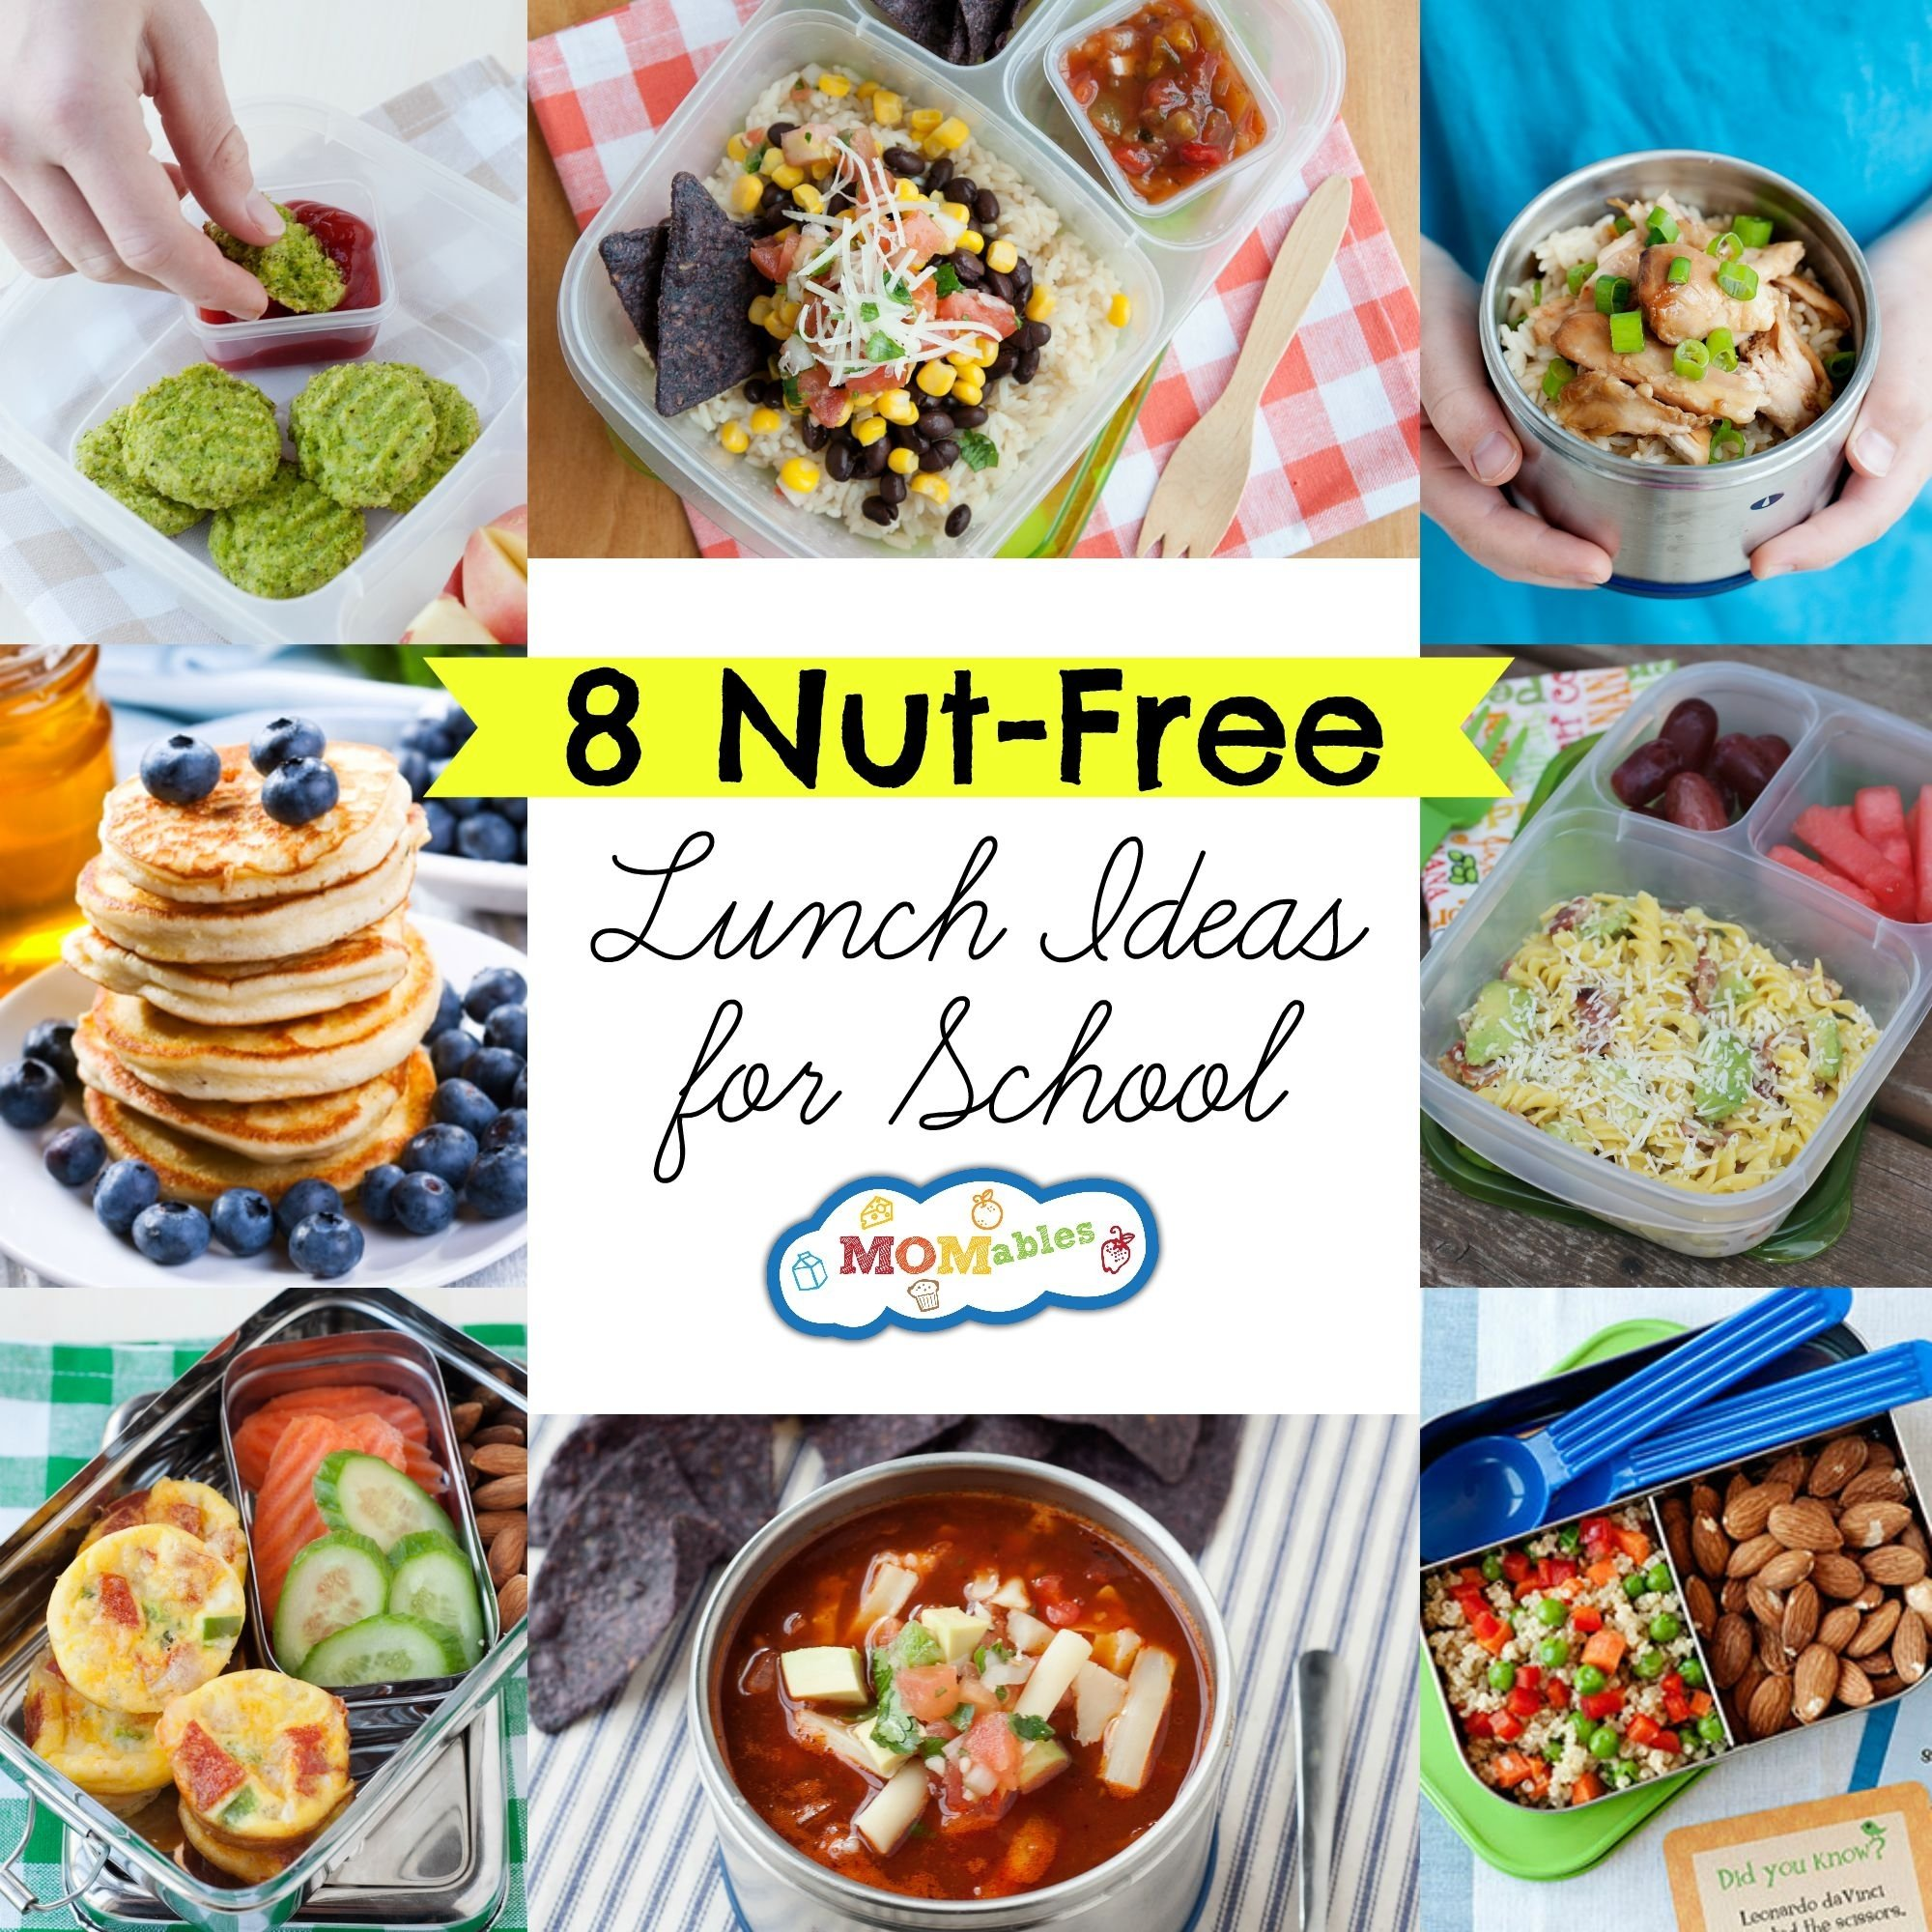 10 Cute Lunch Box Ideas For Picky Eaters 8 nut free lunch ideas for school momables 2 2020